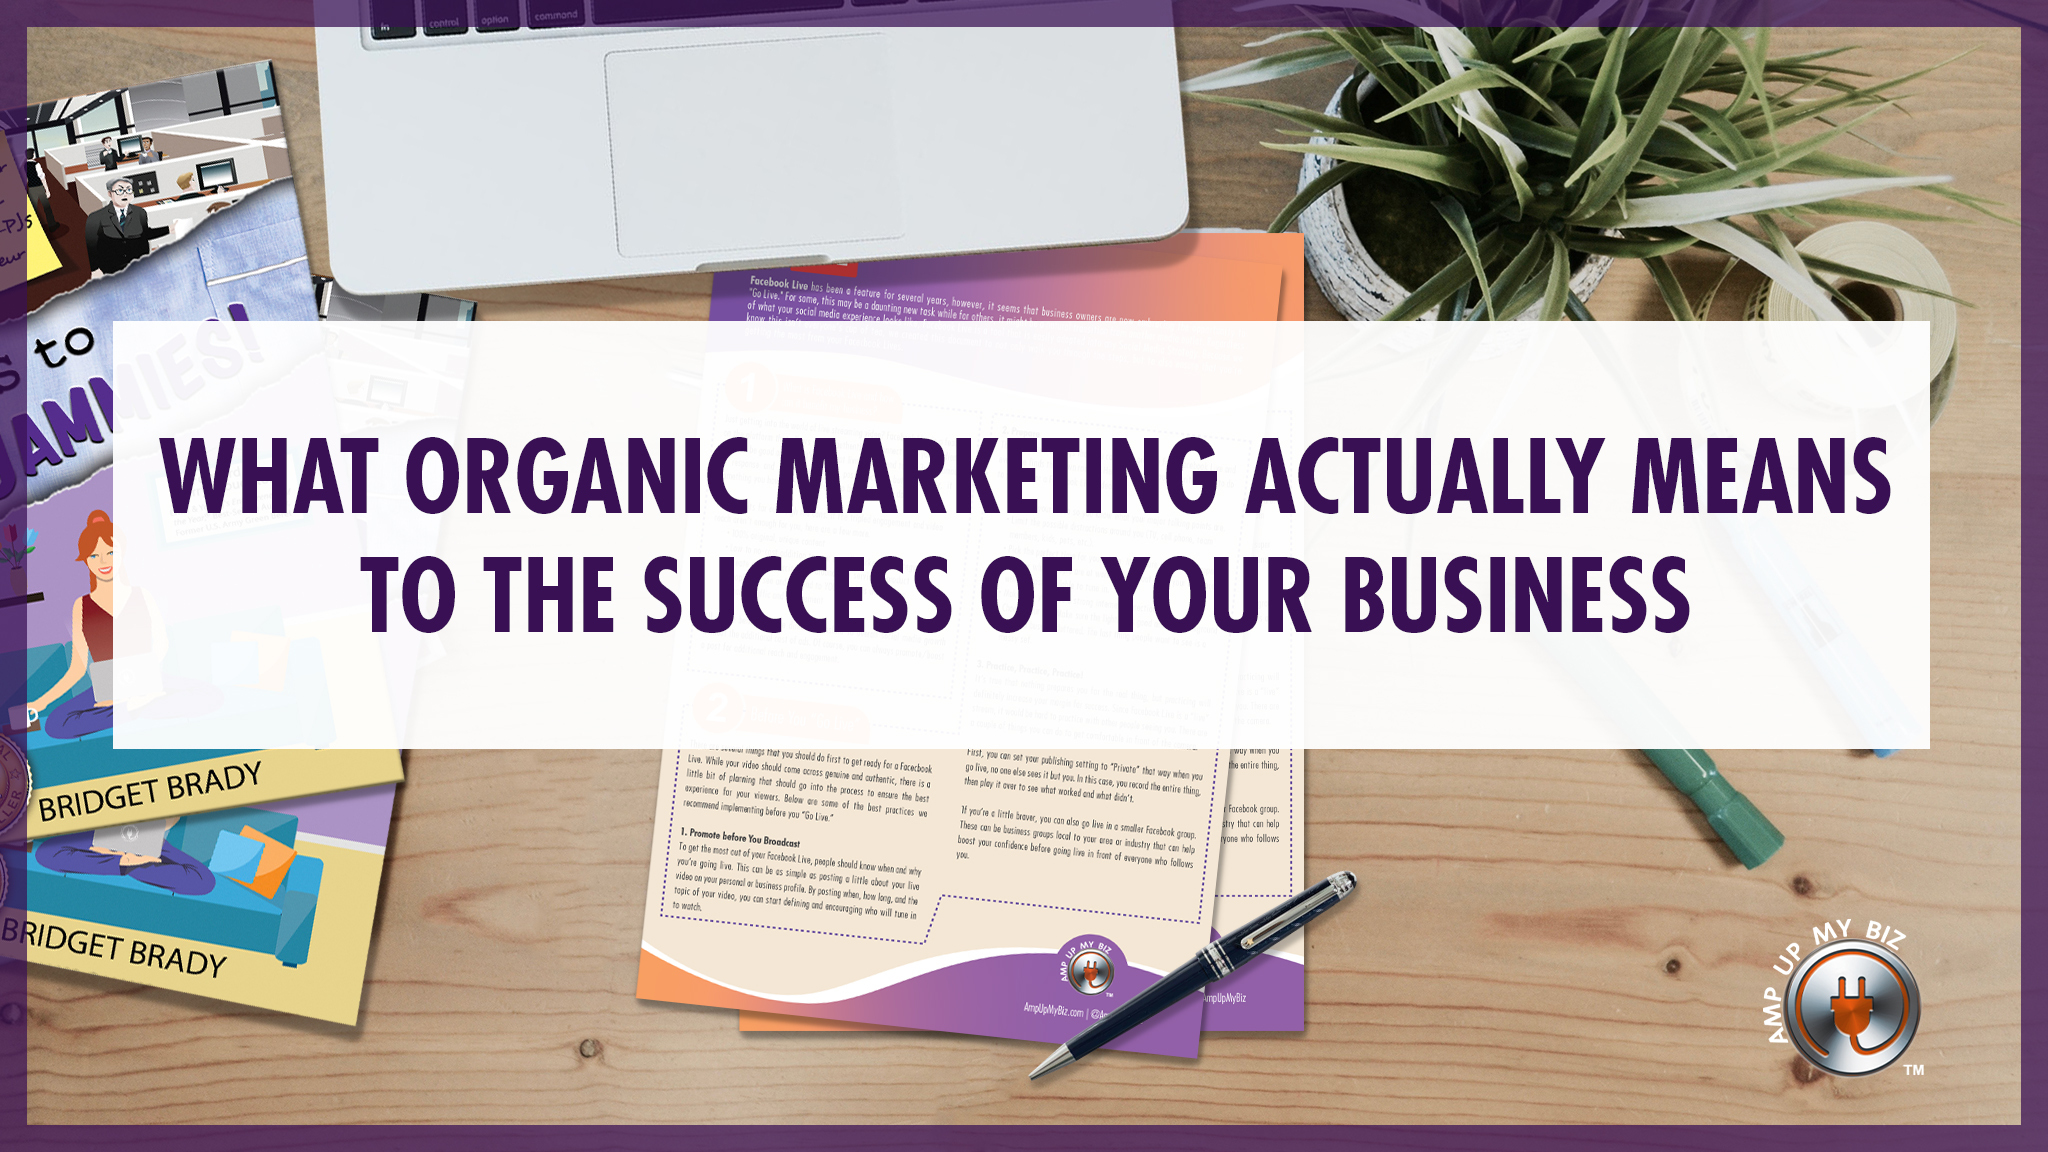 What Organic Marketing Actually Means to the Success of Your Business